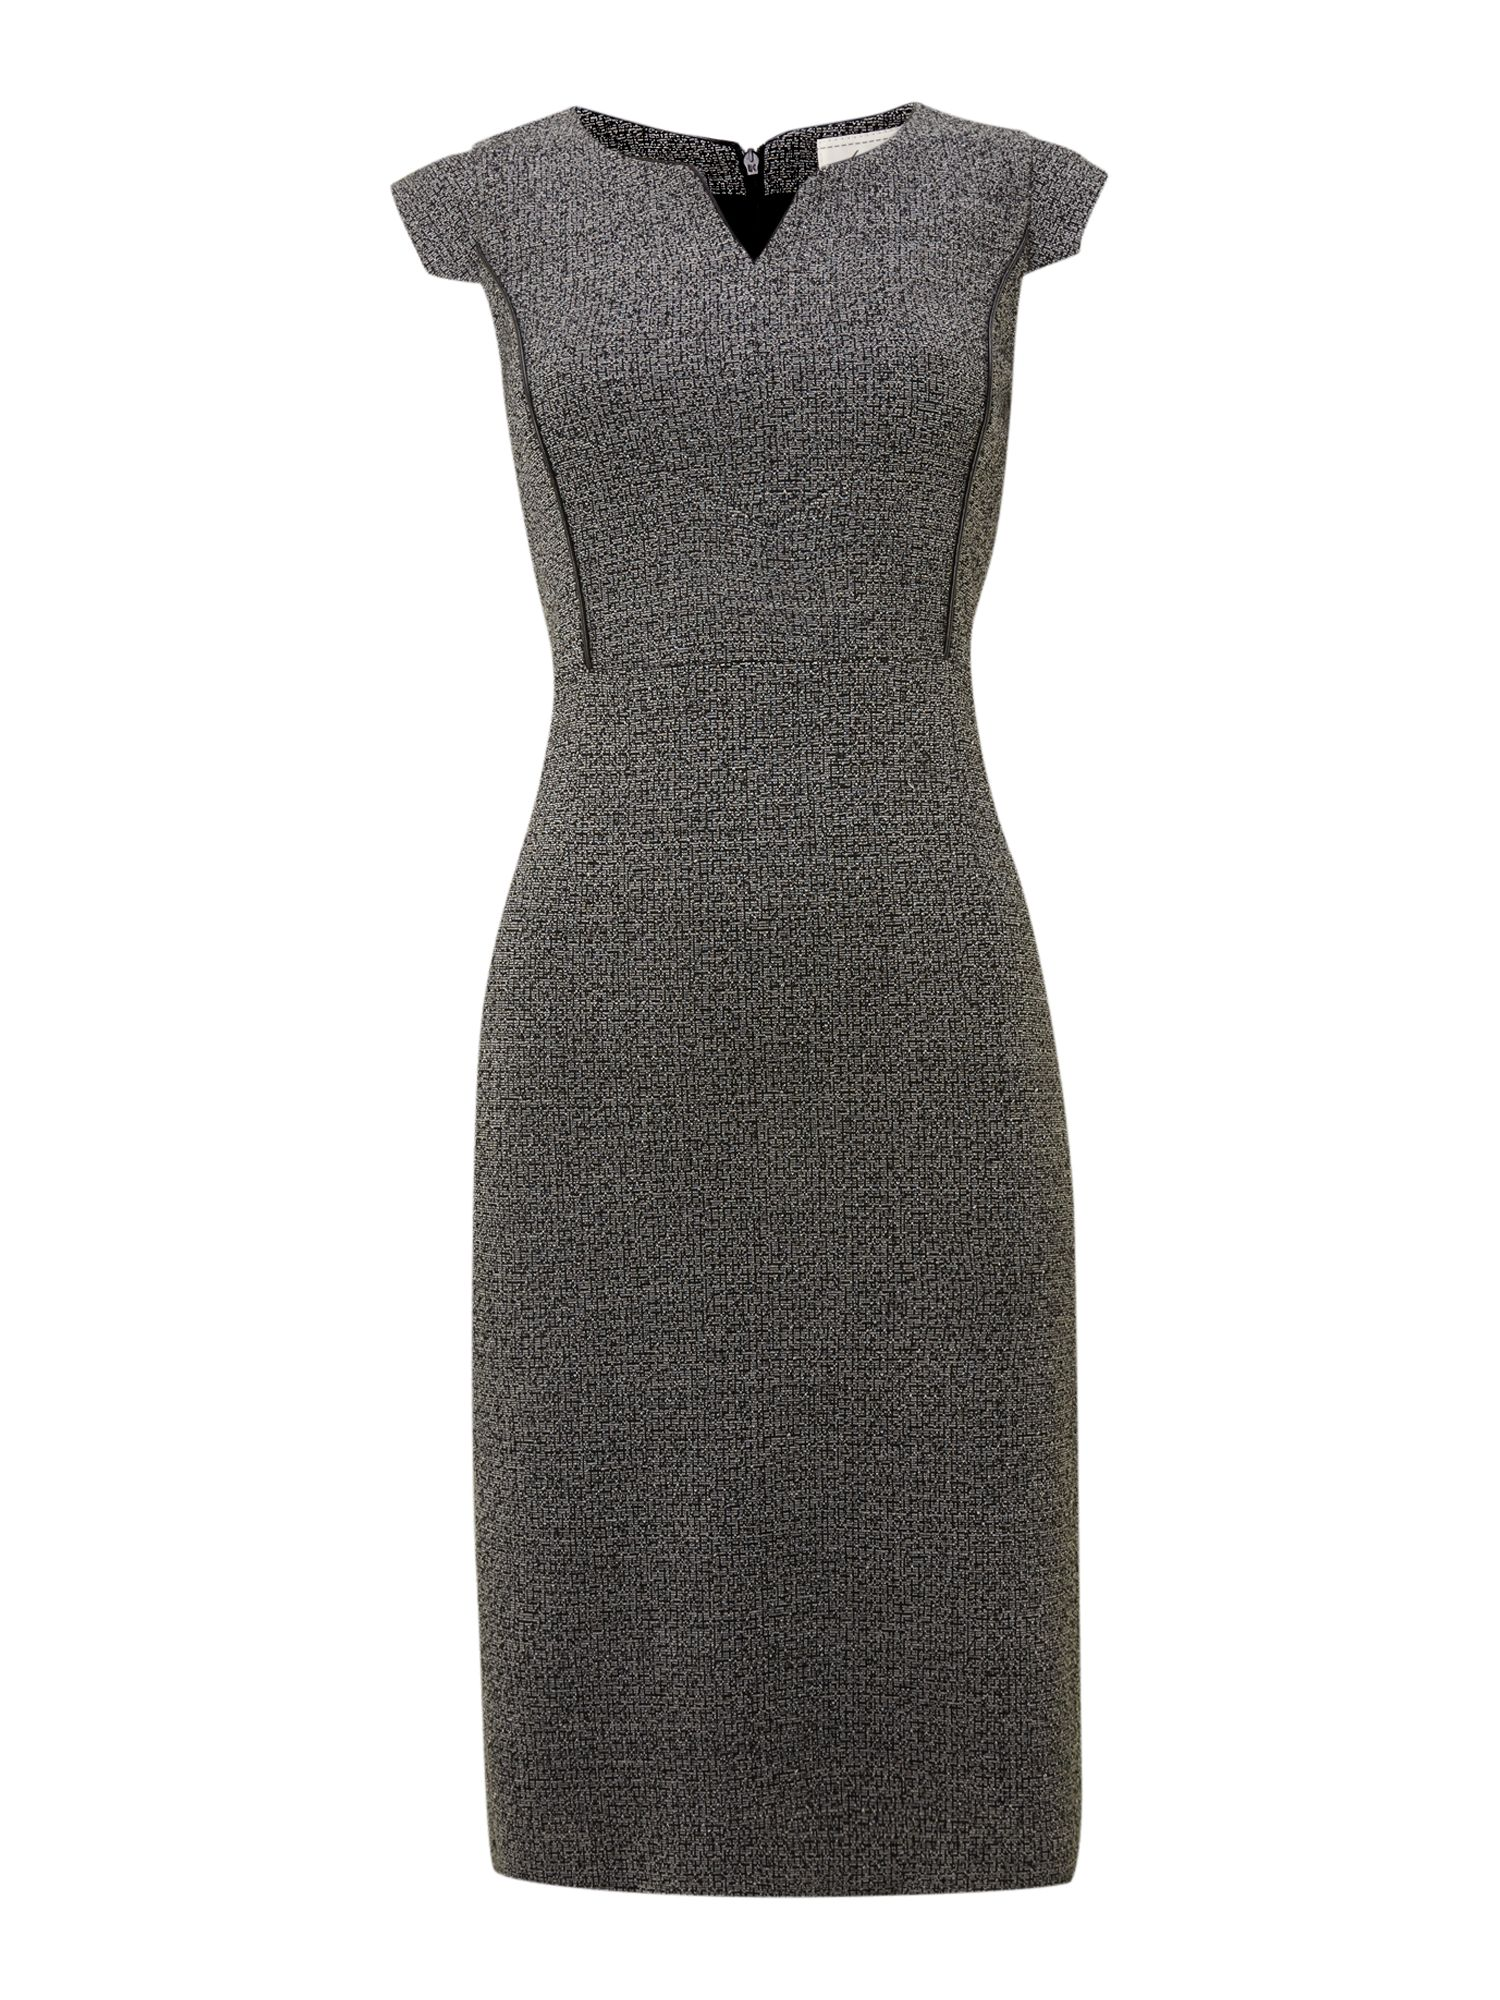 Tweedy ponte dress